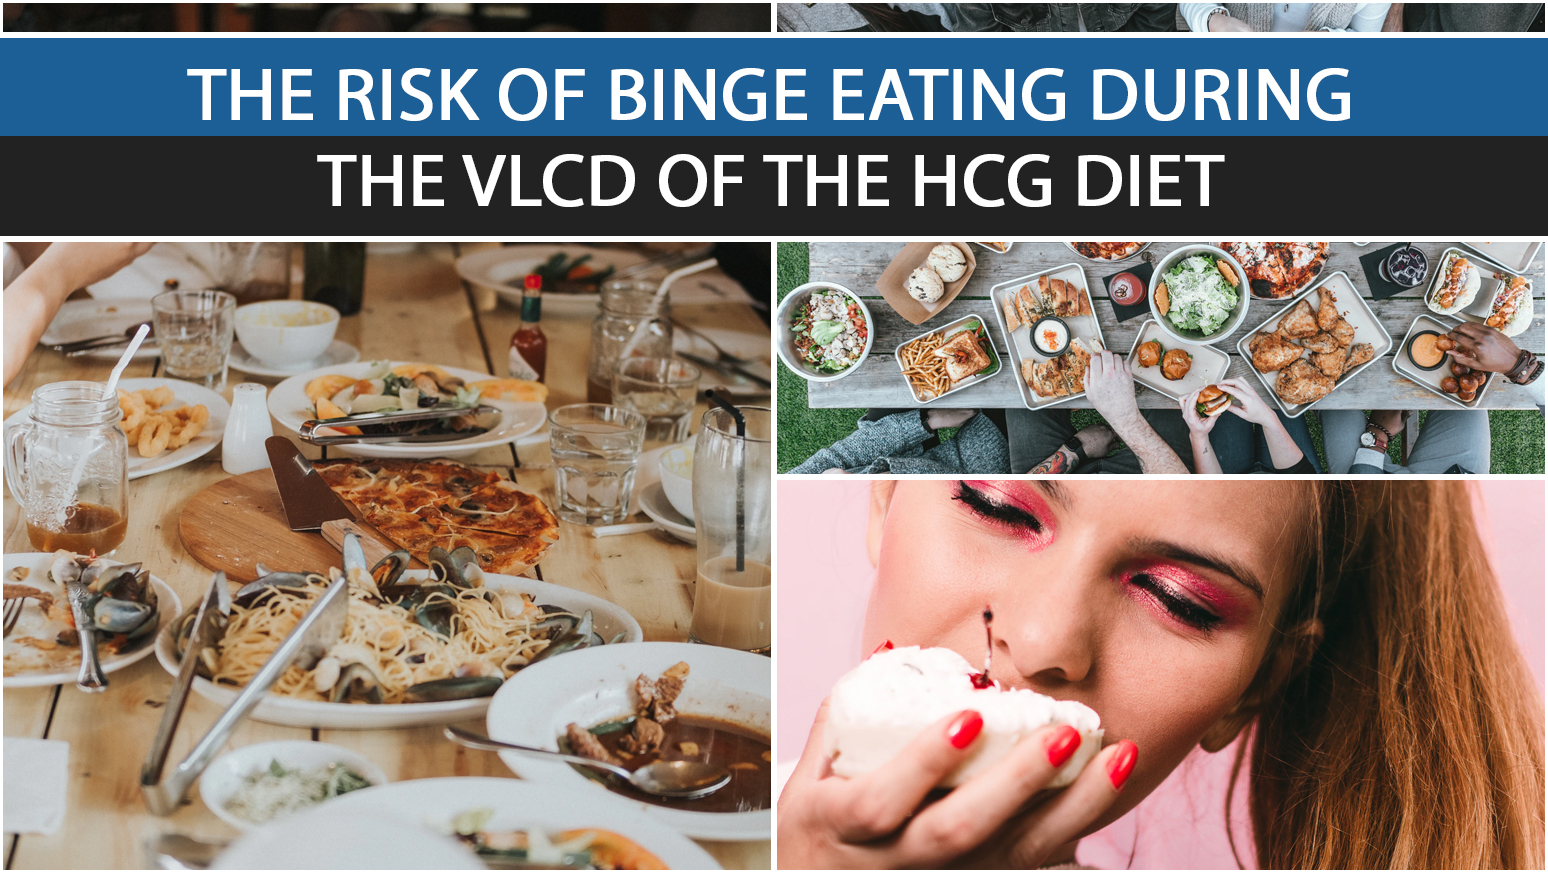 THE RISK OF BINGE EATING DURING THE VLCD OF THE HCG DIET